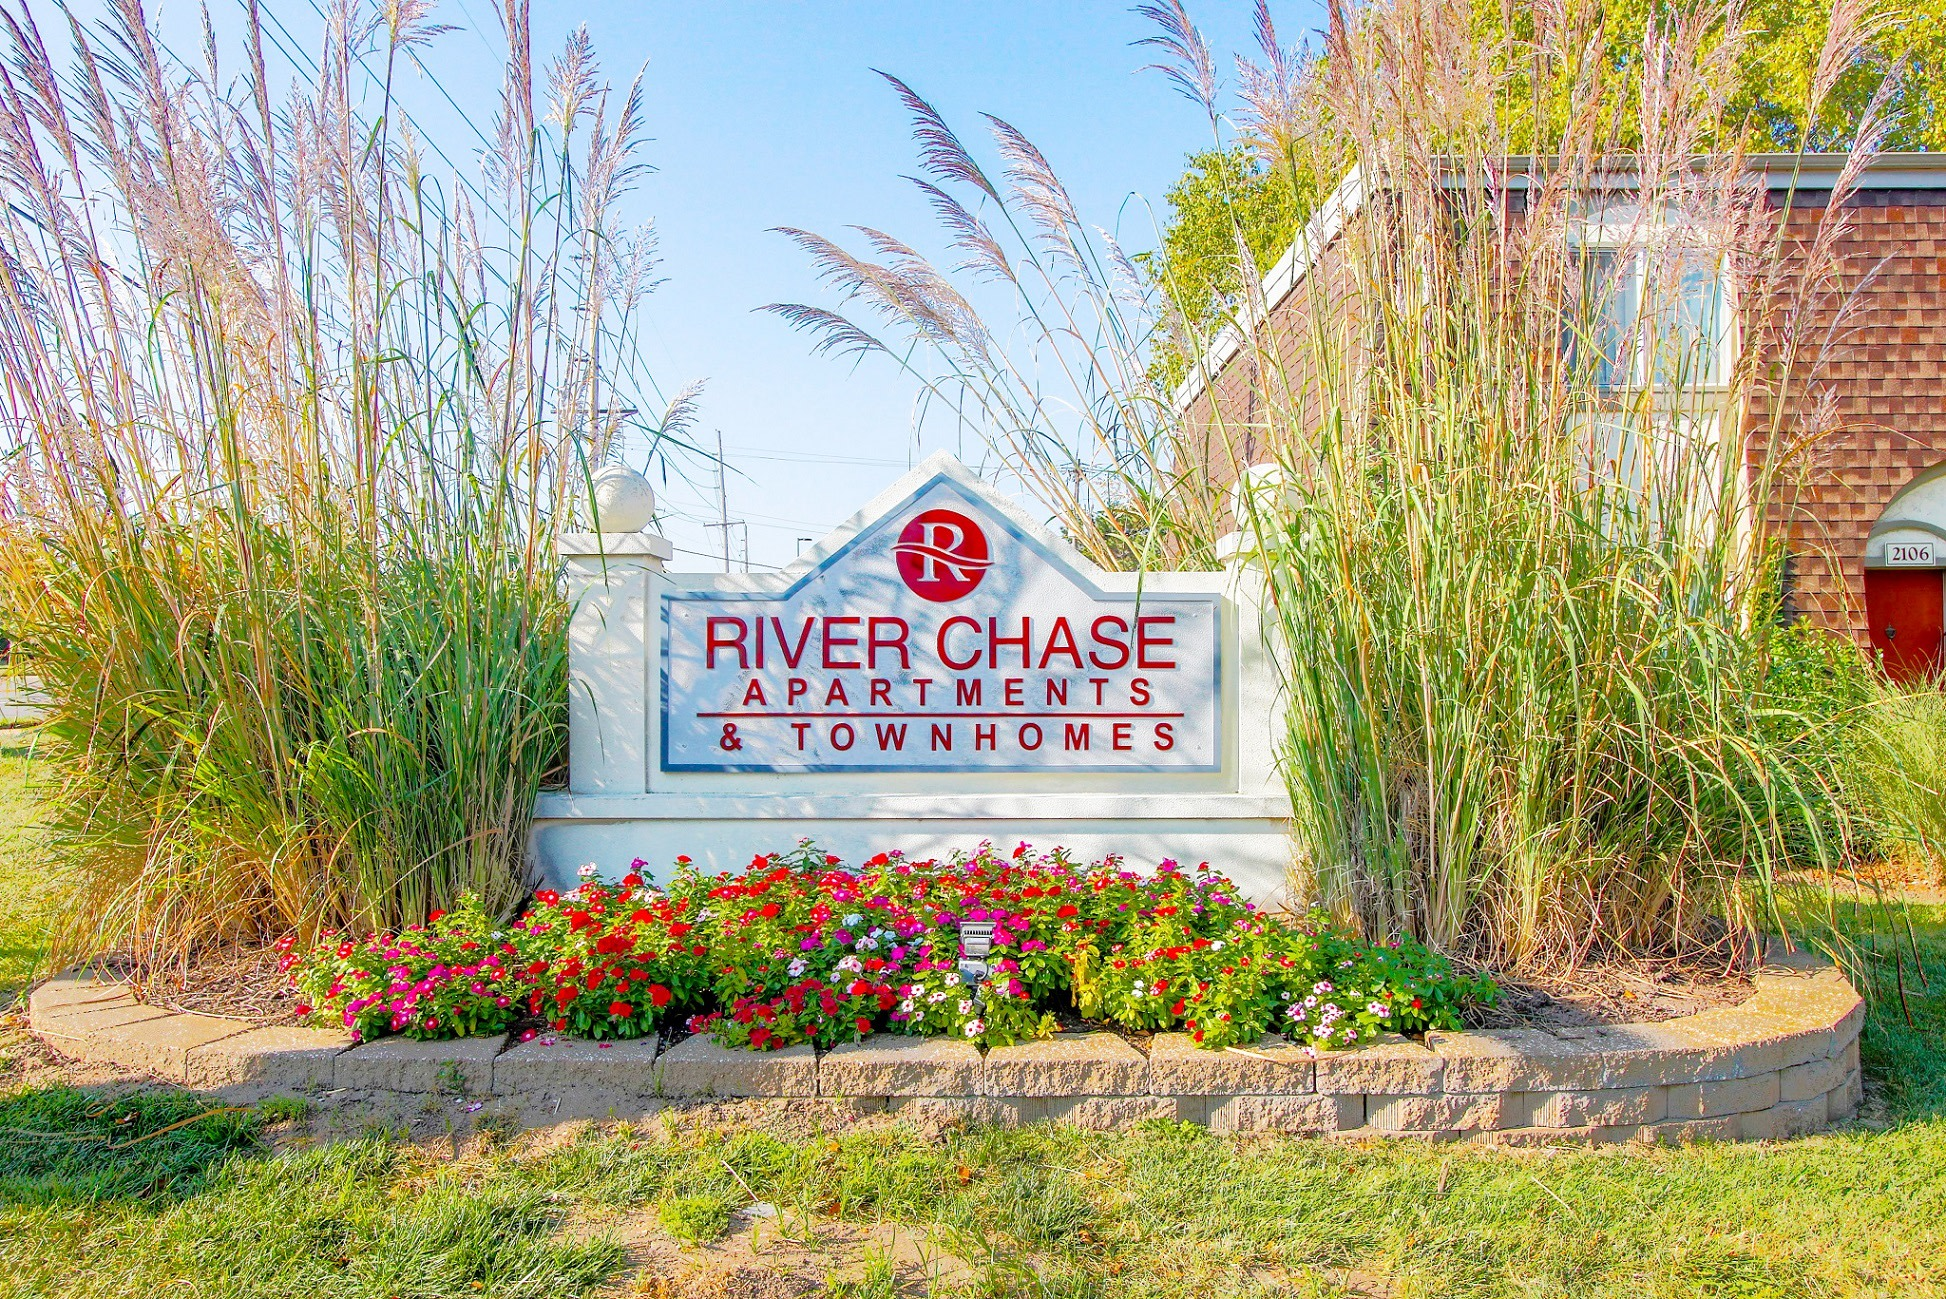 20 Best Apartments In St Charles MO with pictures